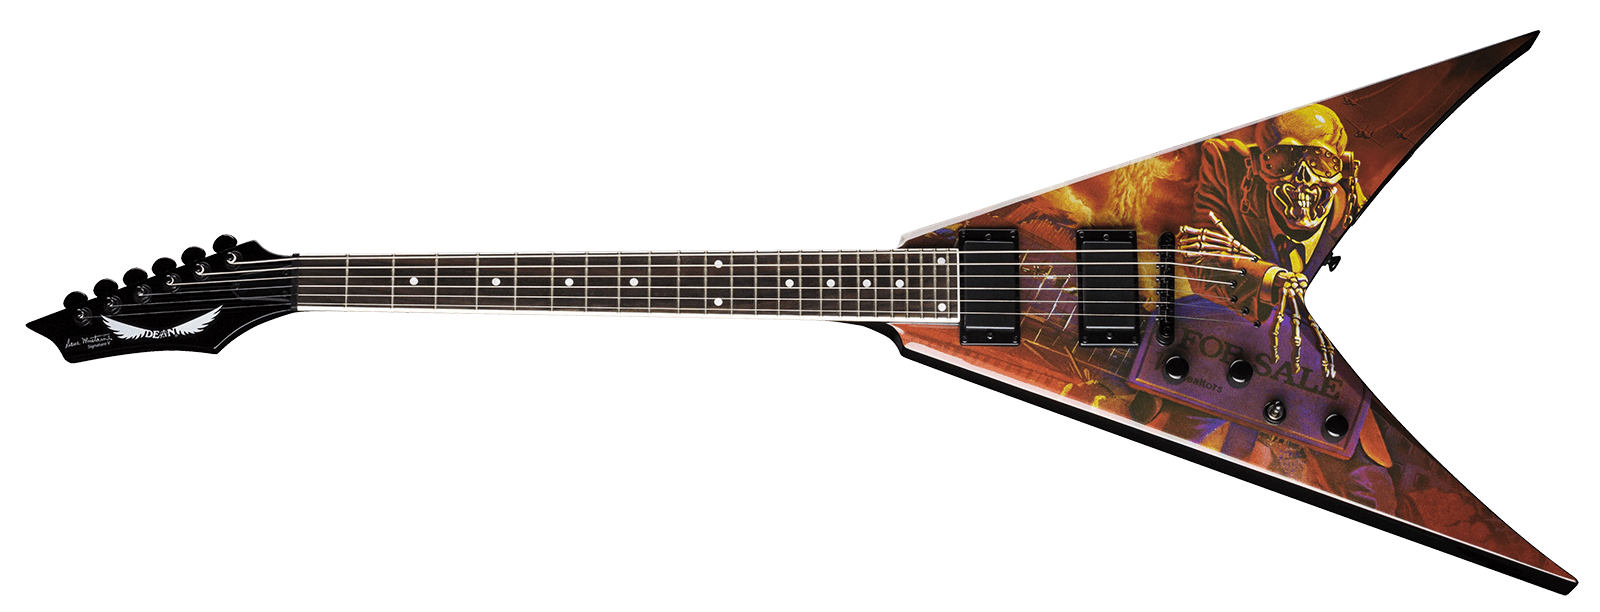 V Dave Mustaine Peace Sells Lefty